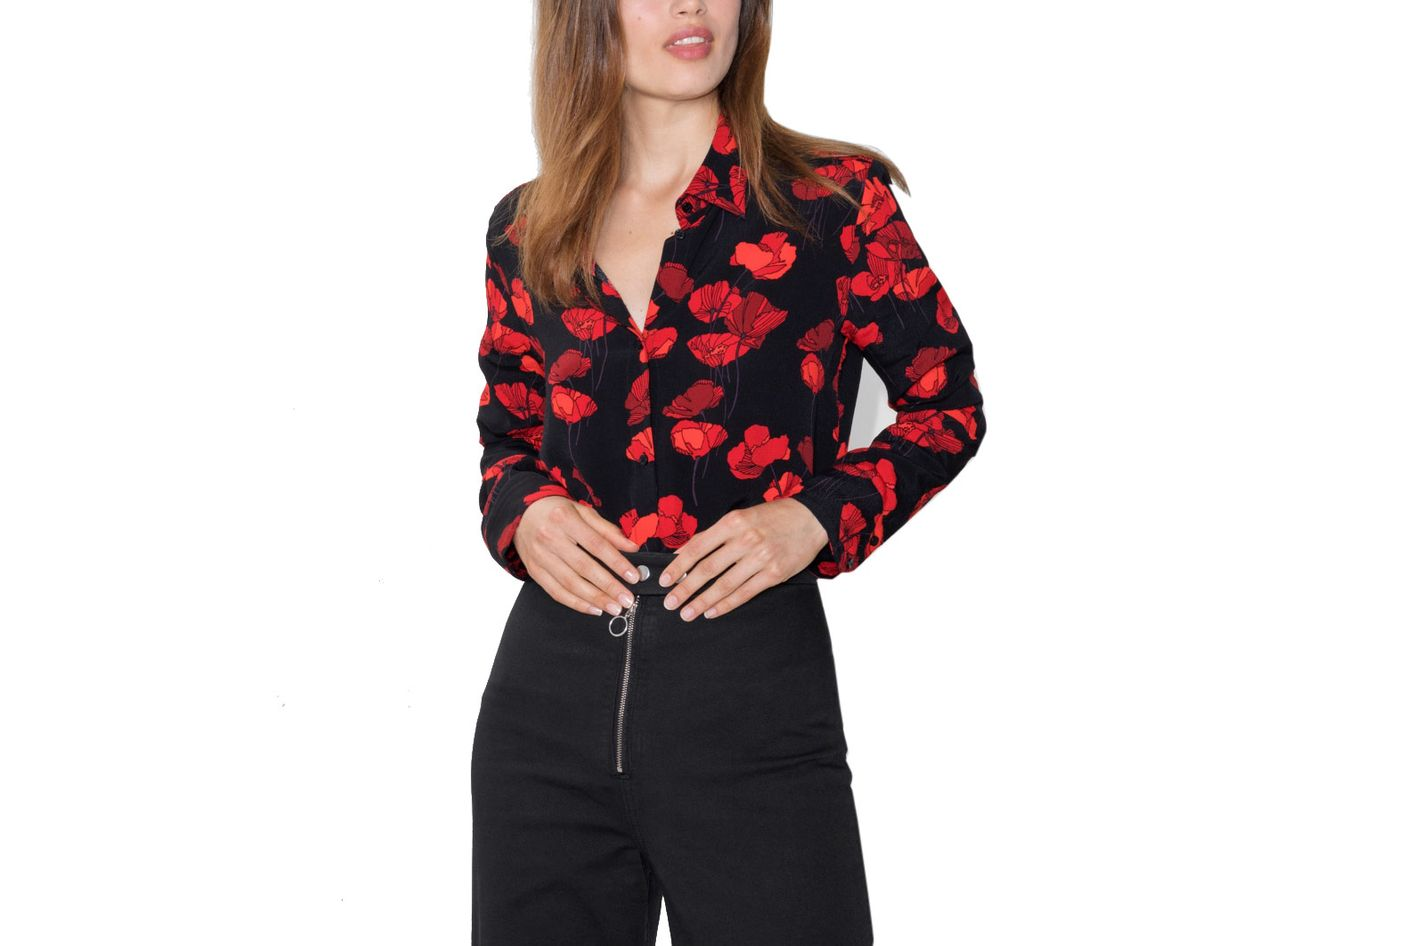 & Other Stories Poppy Print Blouse